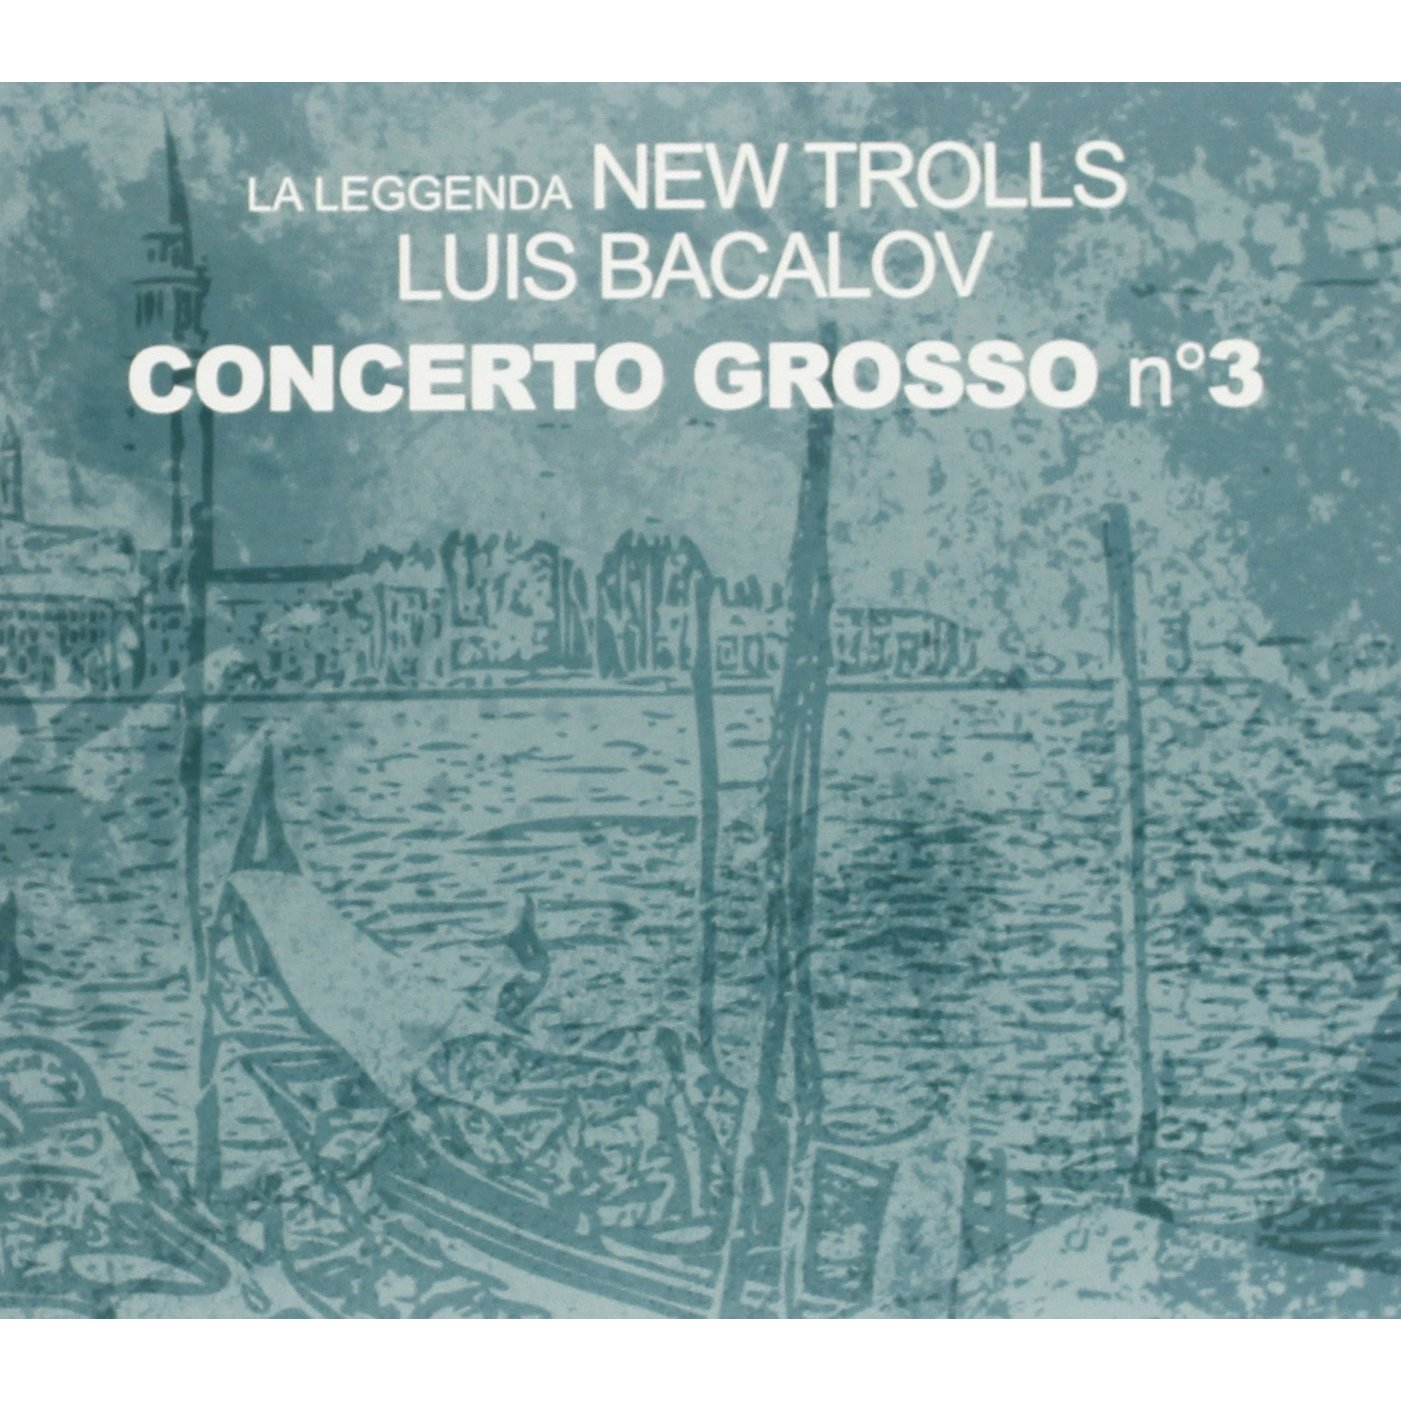 Concerto Grosso №3 (with Luis Bacalov)